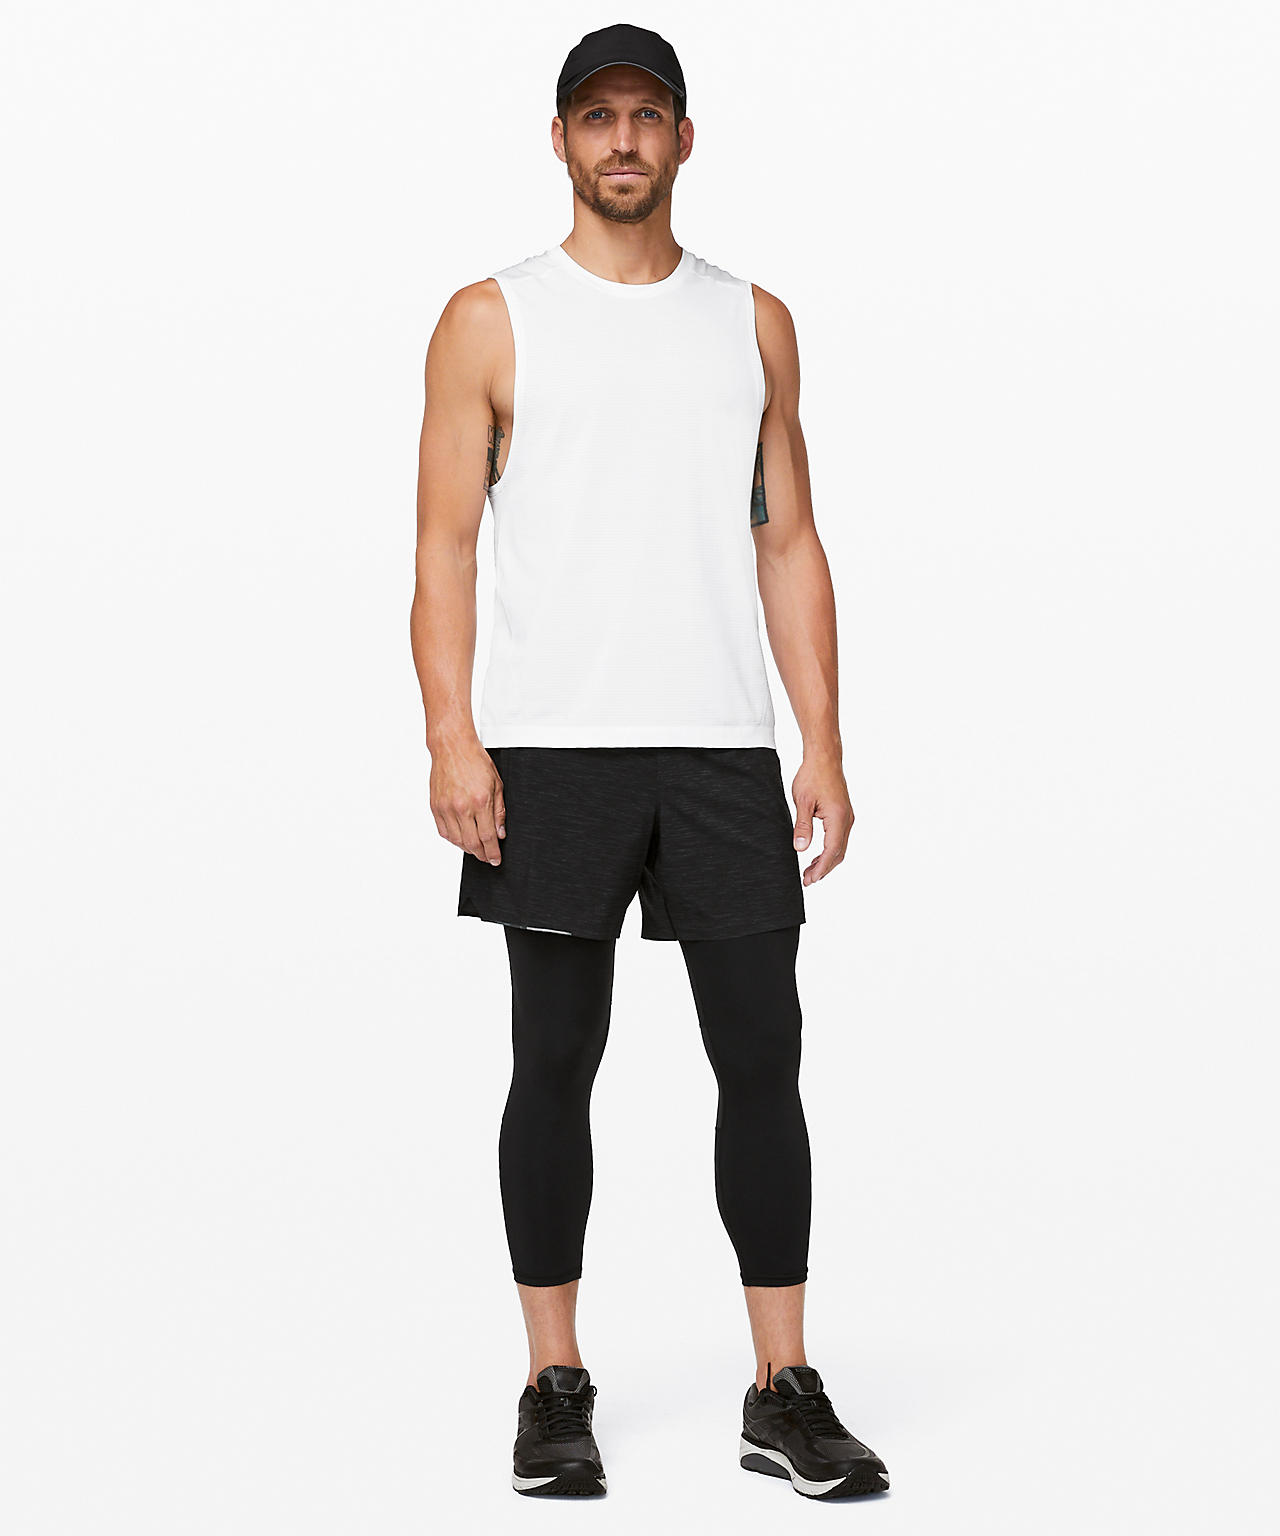 men tights, men fit, men, running pants, running tights, exercise,